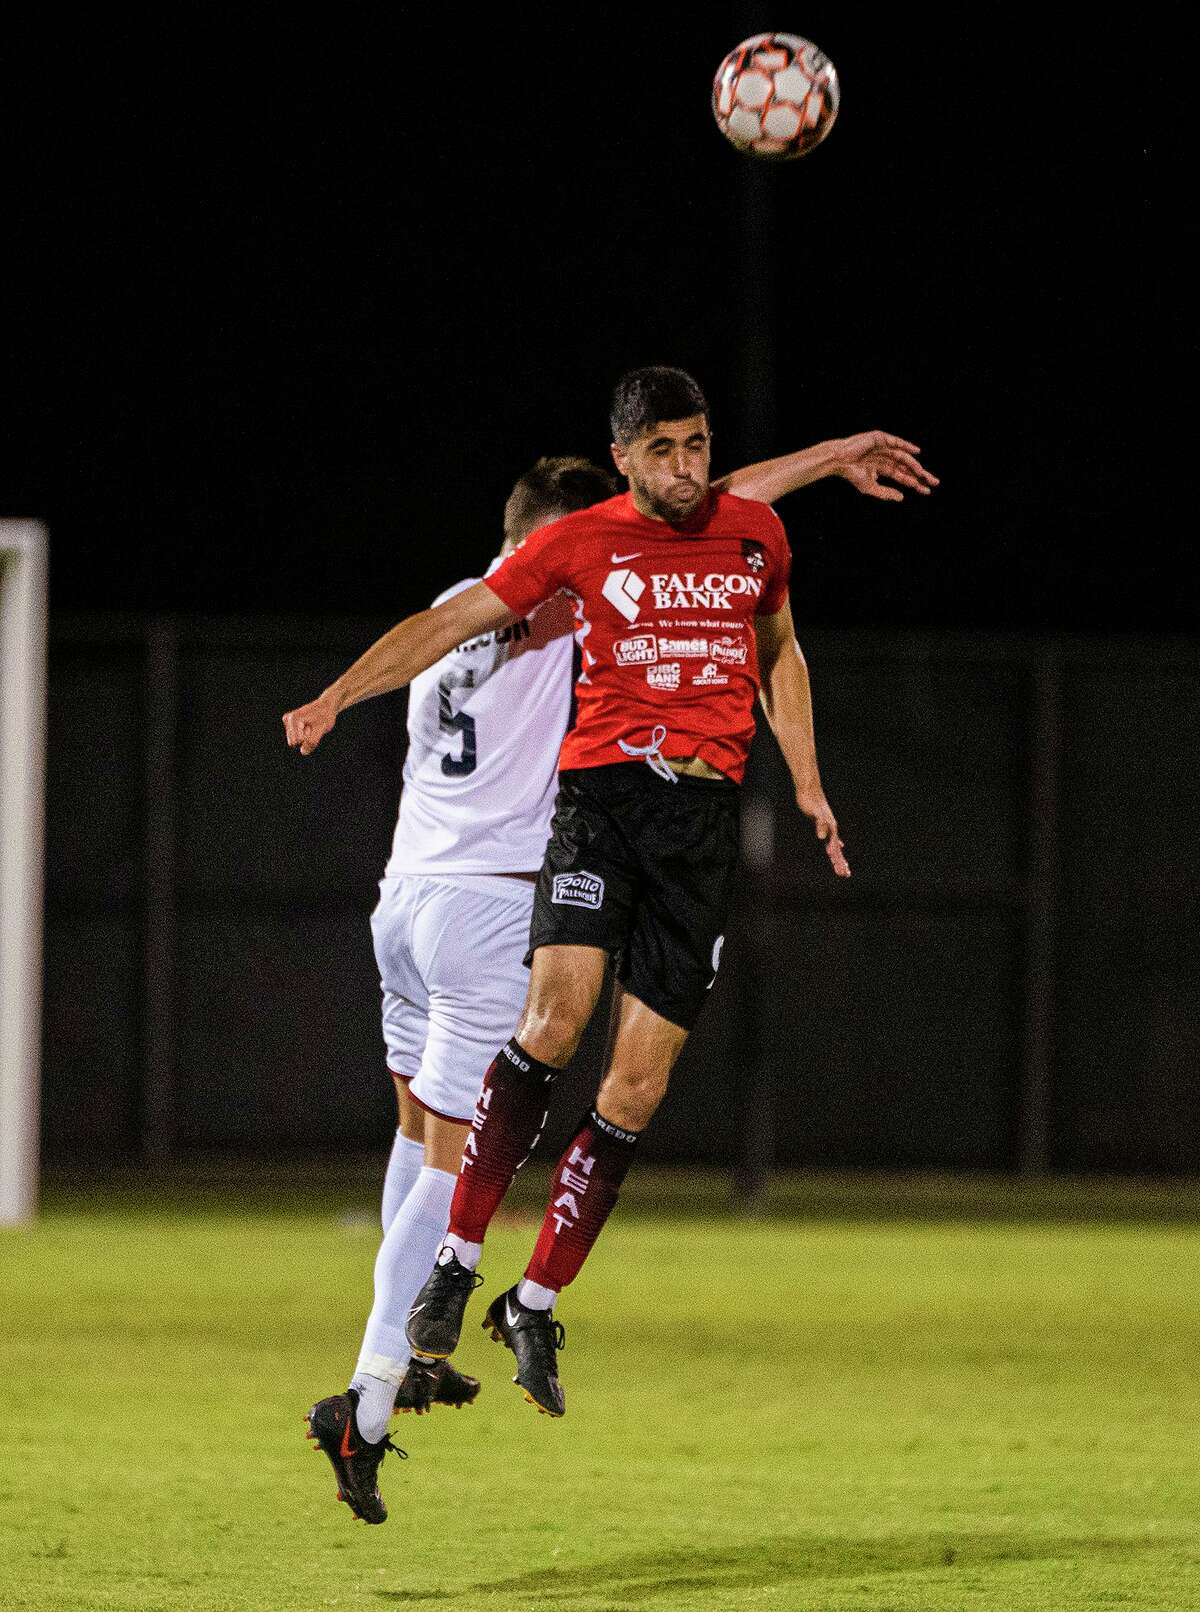 Nadav Datner scored the lone goal for the Laredo Heat on Friday in a 2-1 loss to Irving FC at the TAMIU Soccer Complex.